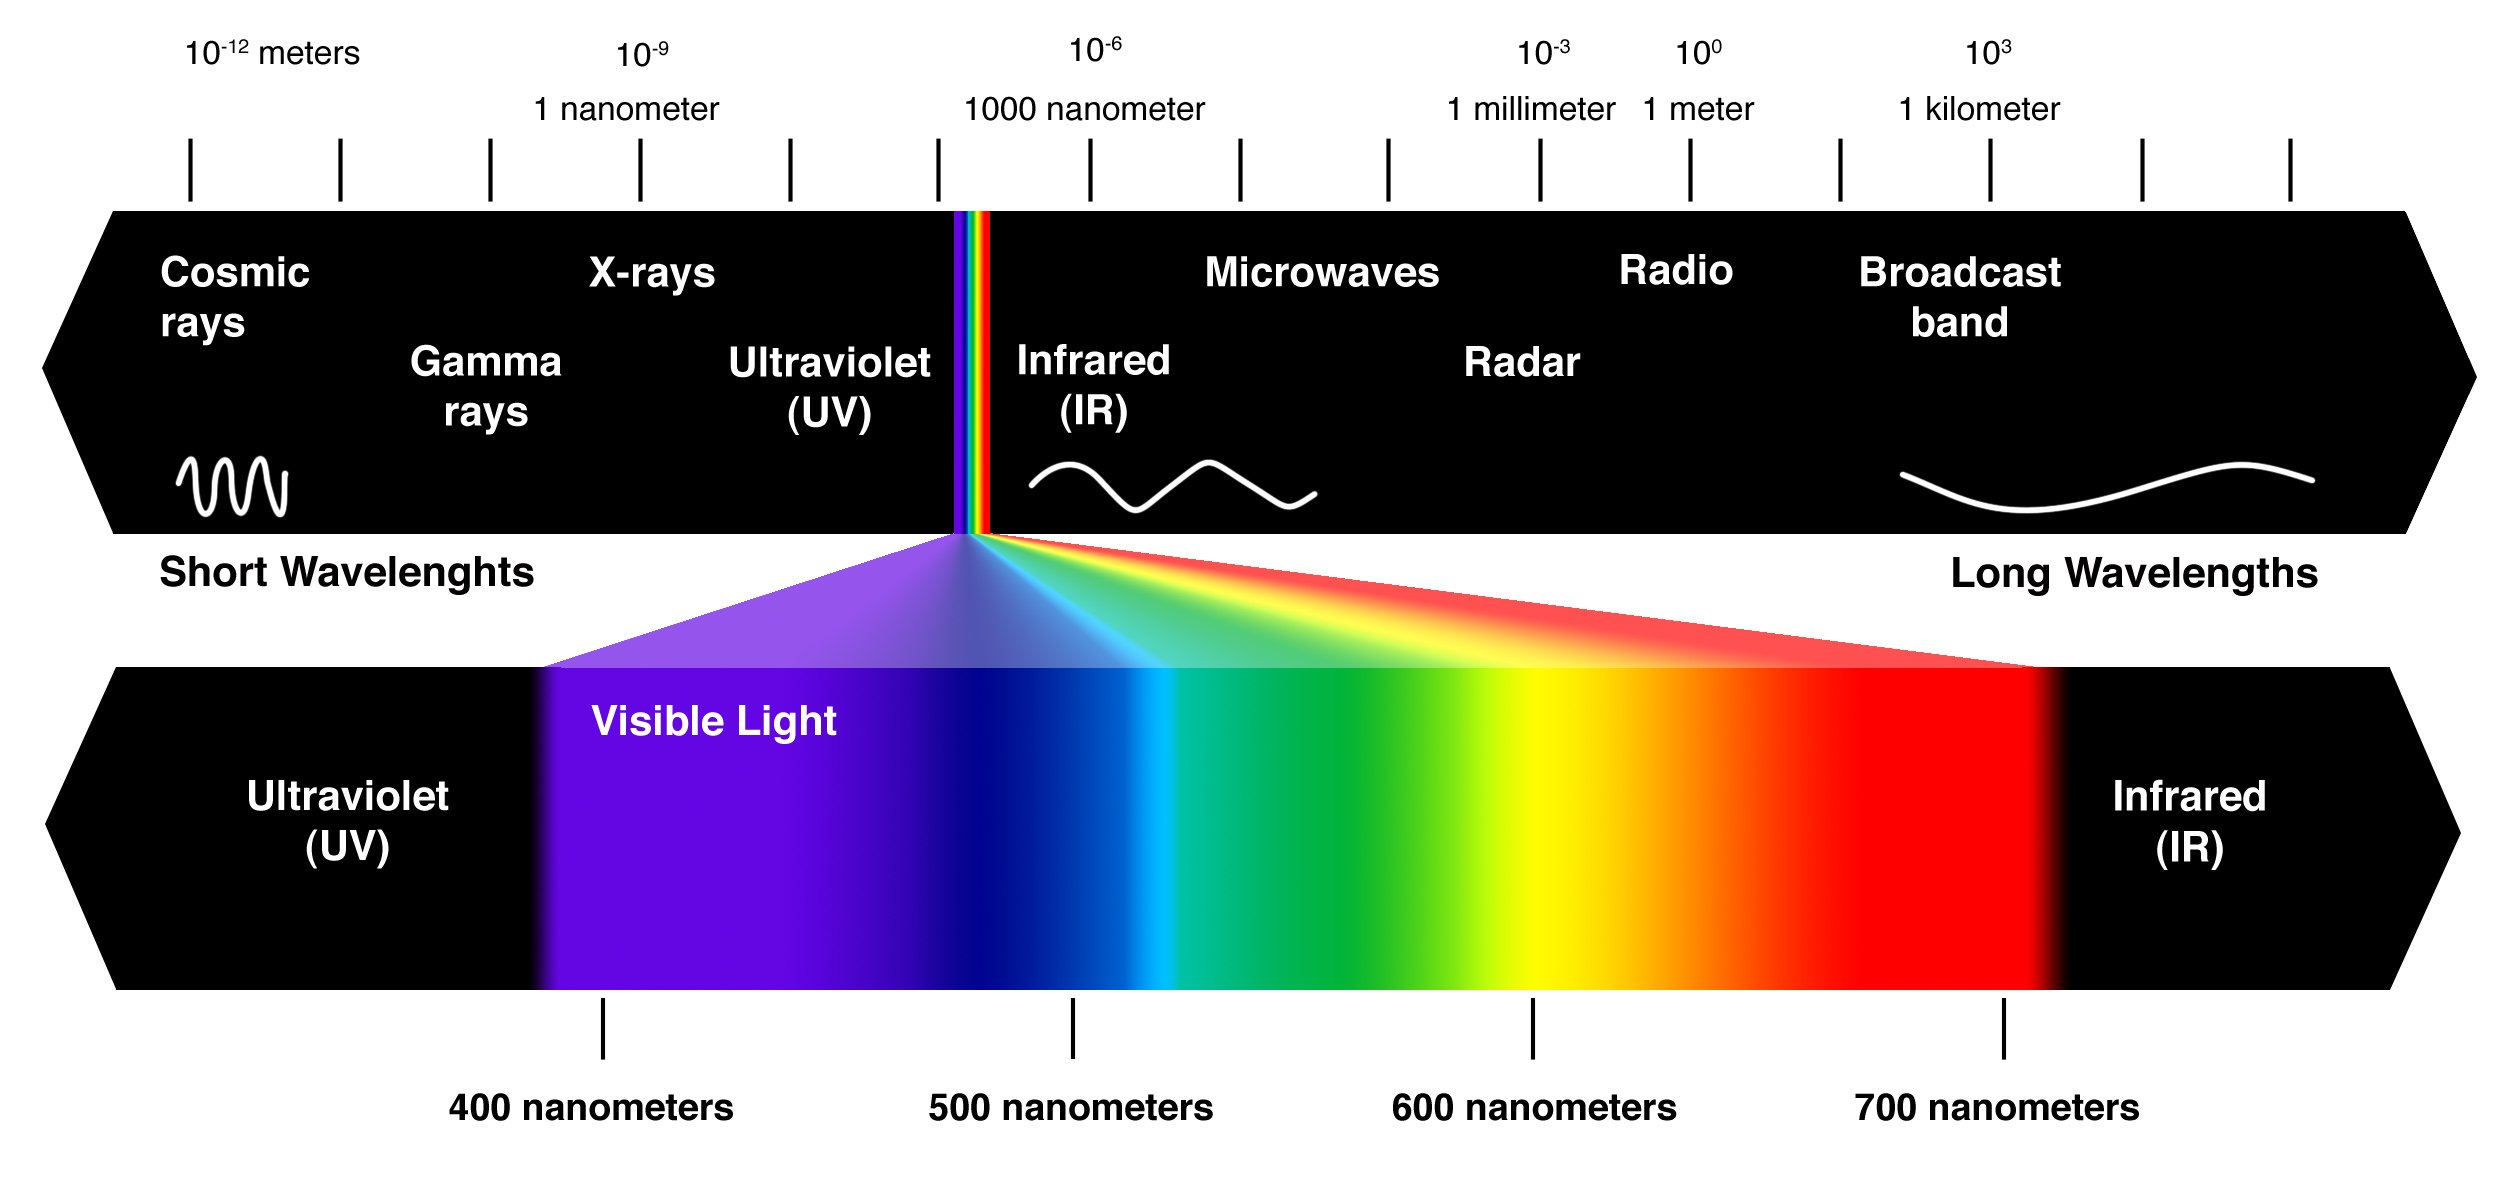 electromagnetic-spectrum-with-expanded-visible-light-section